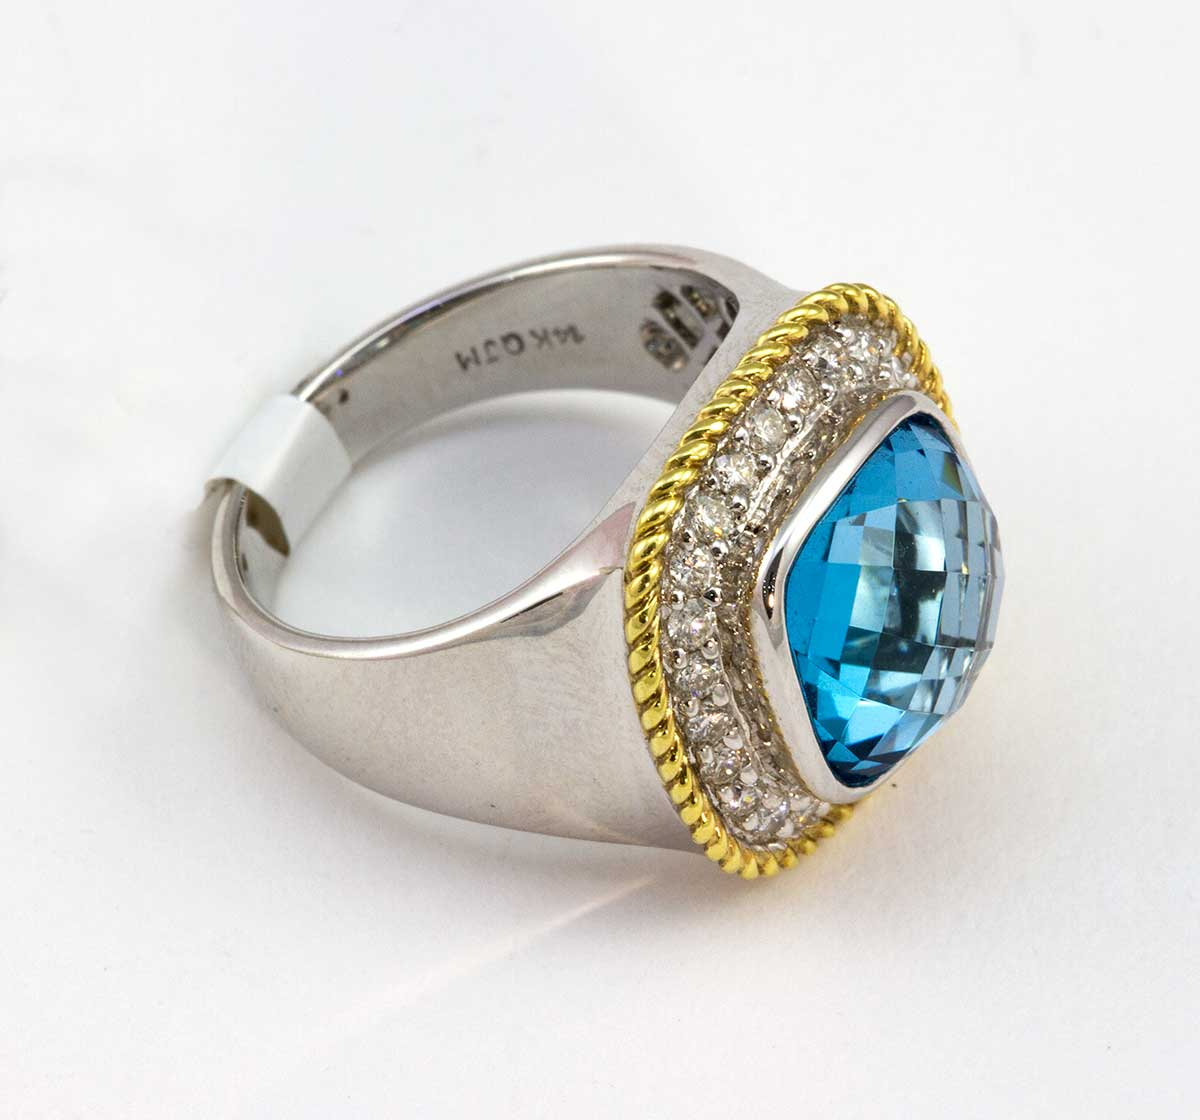 White gold topaz ring with yellow gold trim with 24diamonds .47 cts and blue topaz wieght 7.50